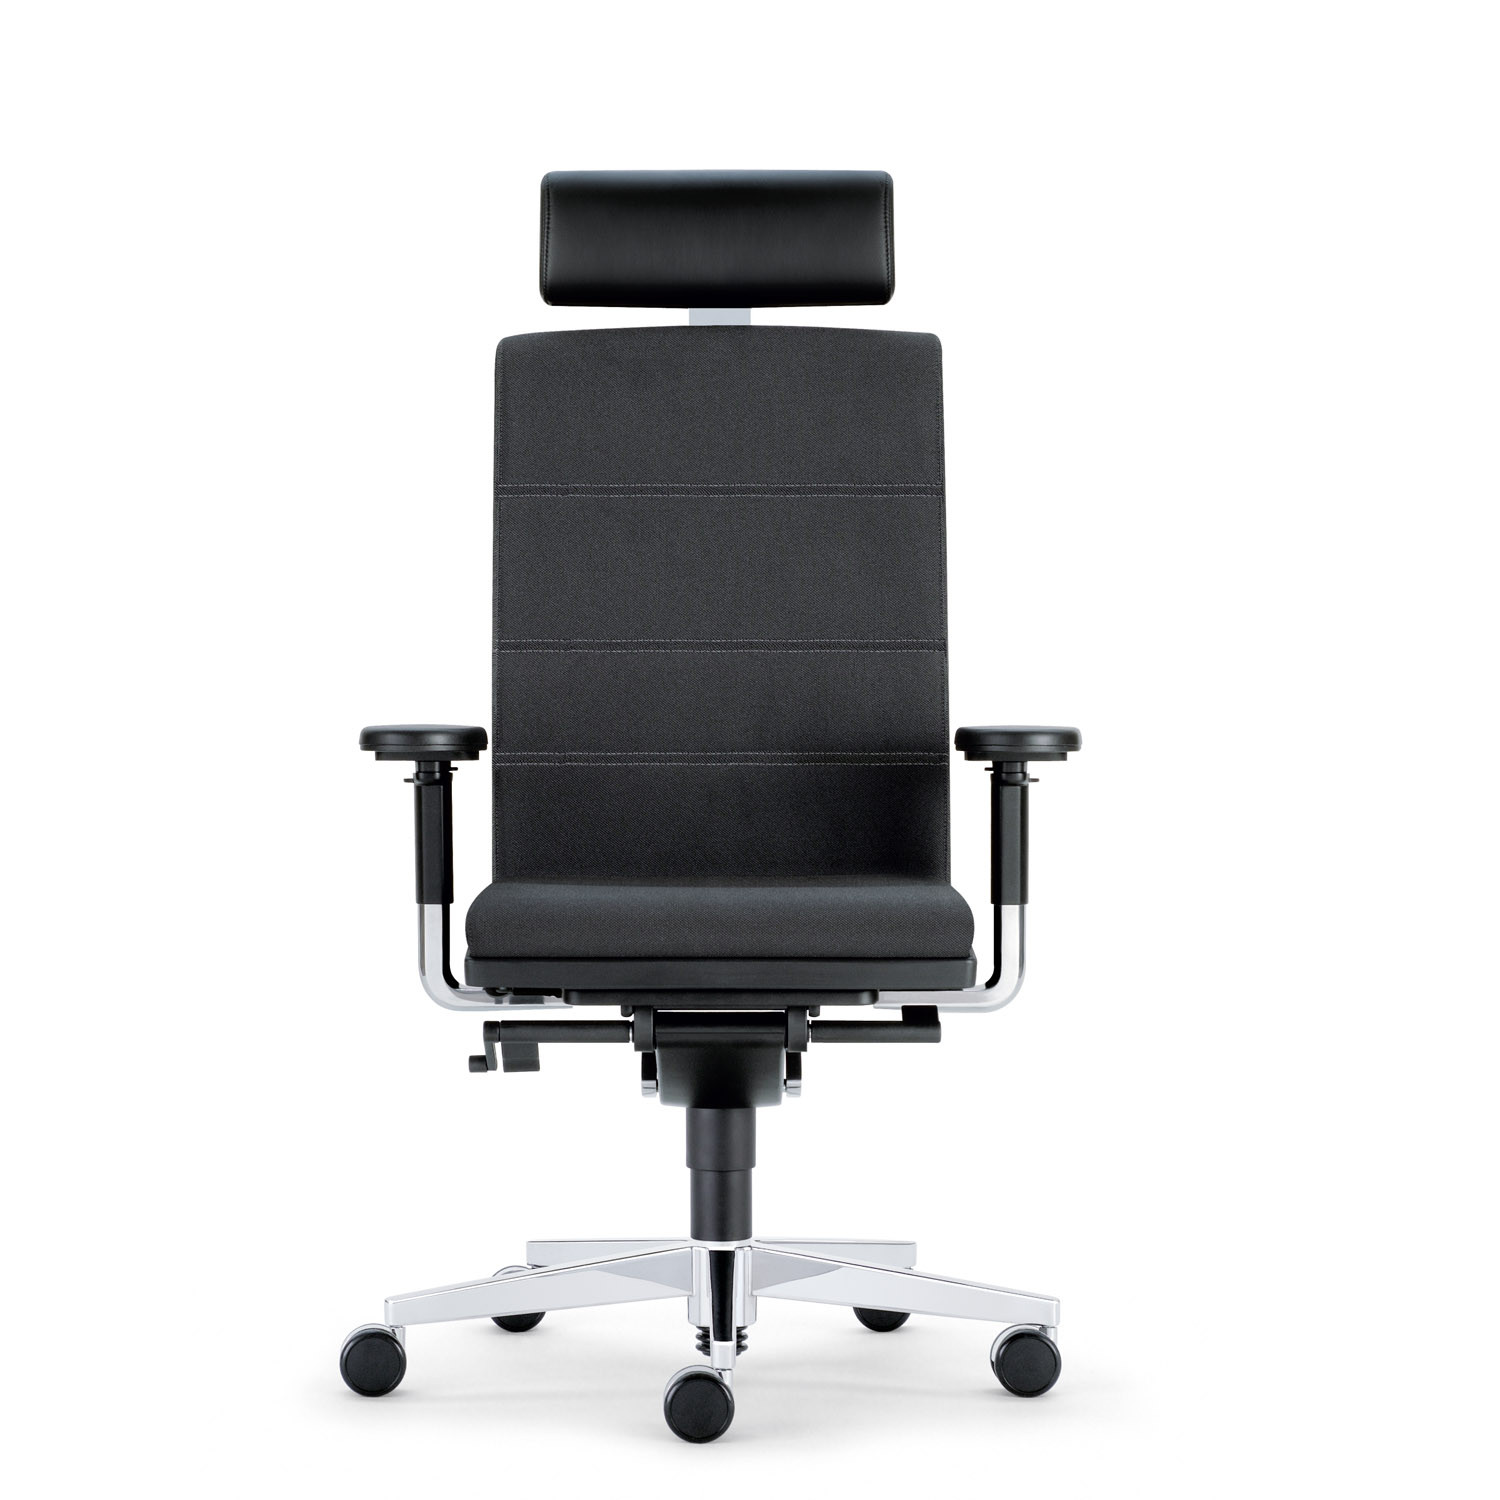 Mr. 24 Ergonomic Executive Chair